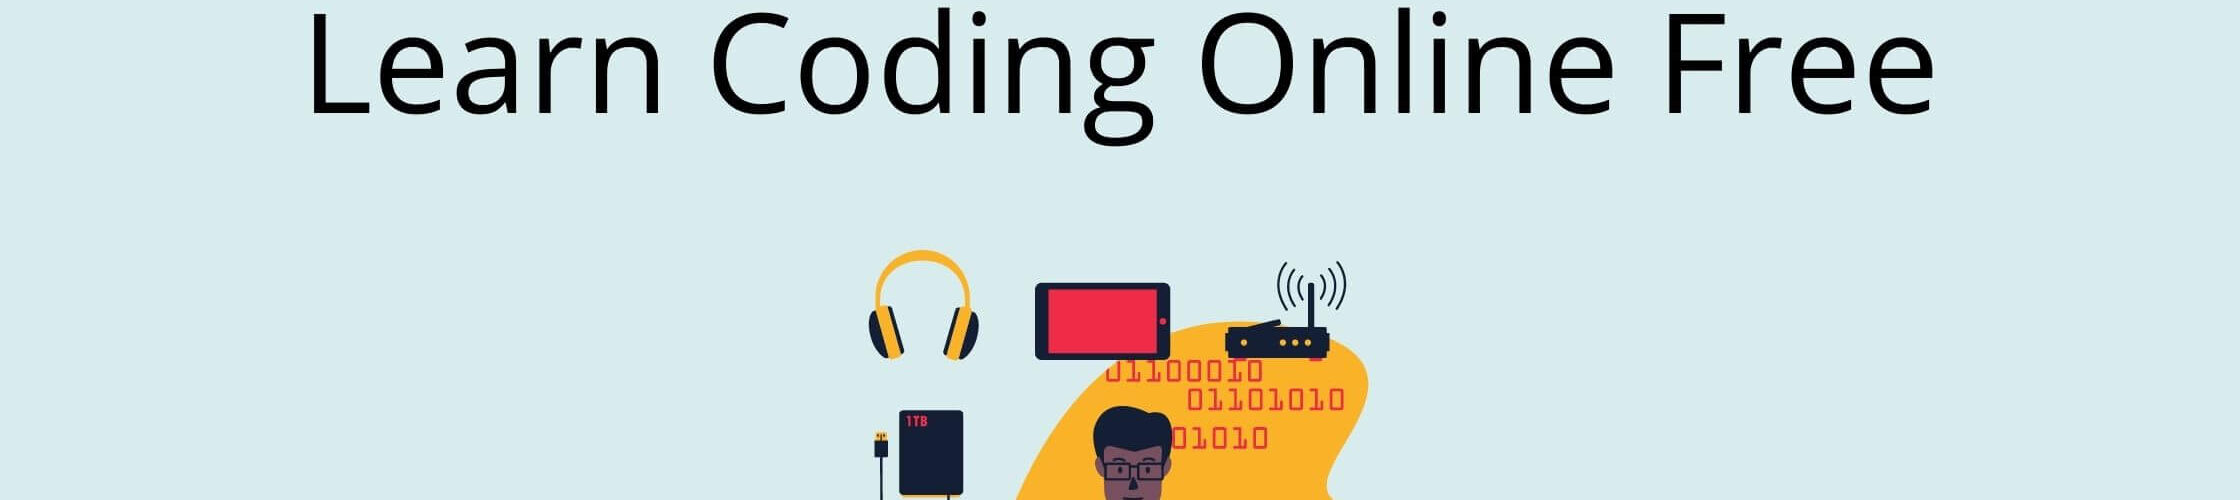 Websites to Learn Coding Online for Free